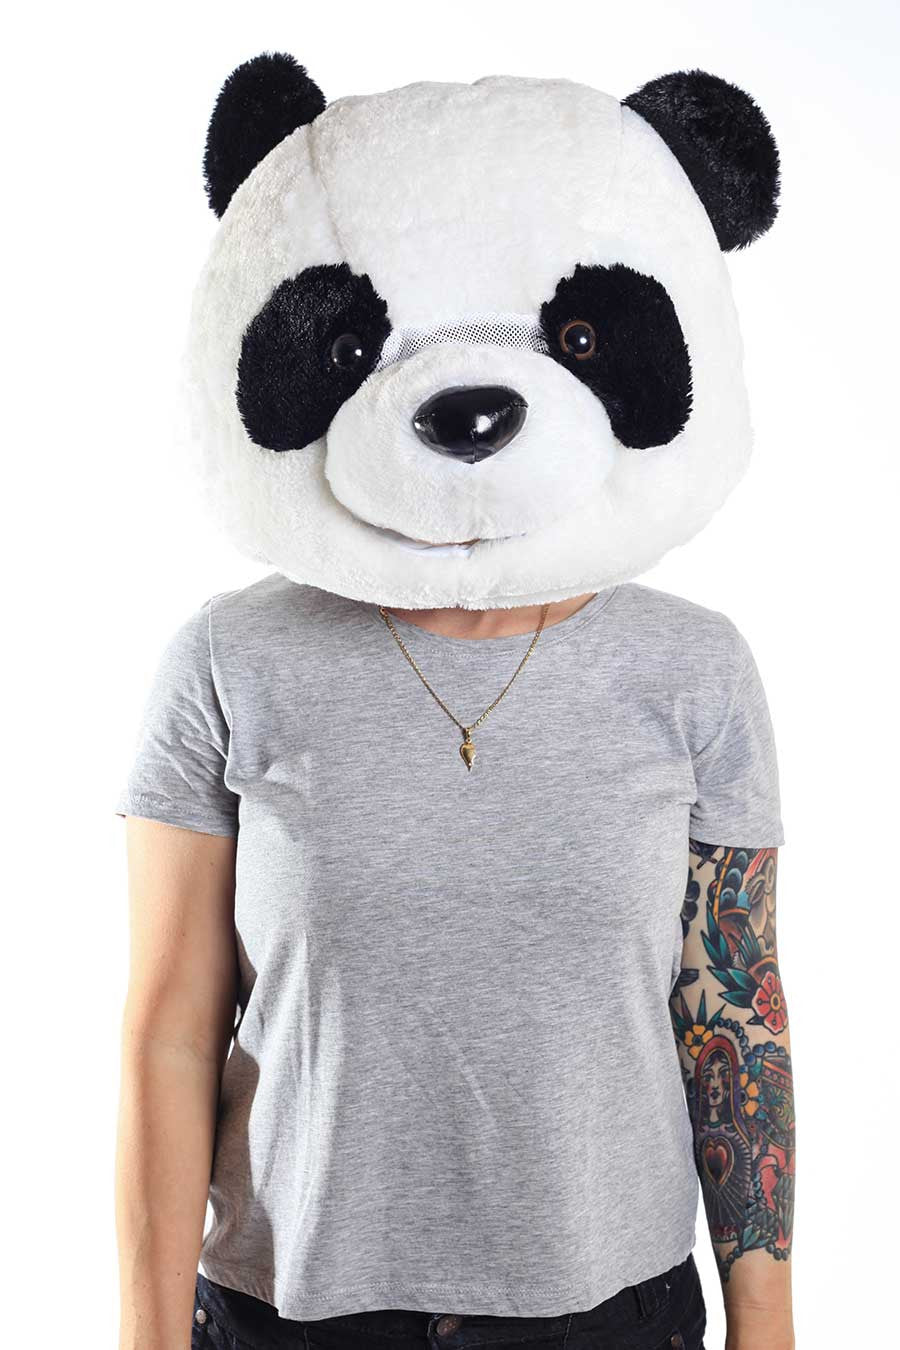 Sazac Giant Panda Head Animal Costume Mask  sc 1 st  Kigurumi.com & Great Big Panda Head